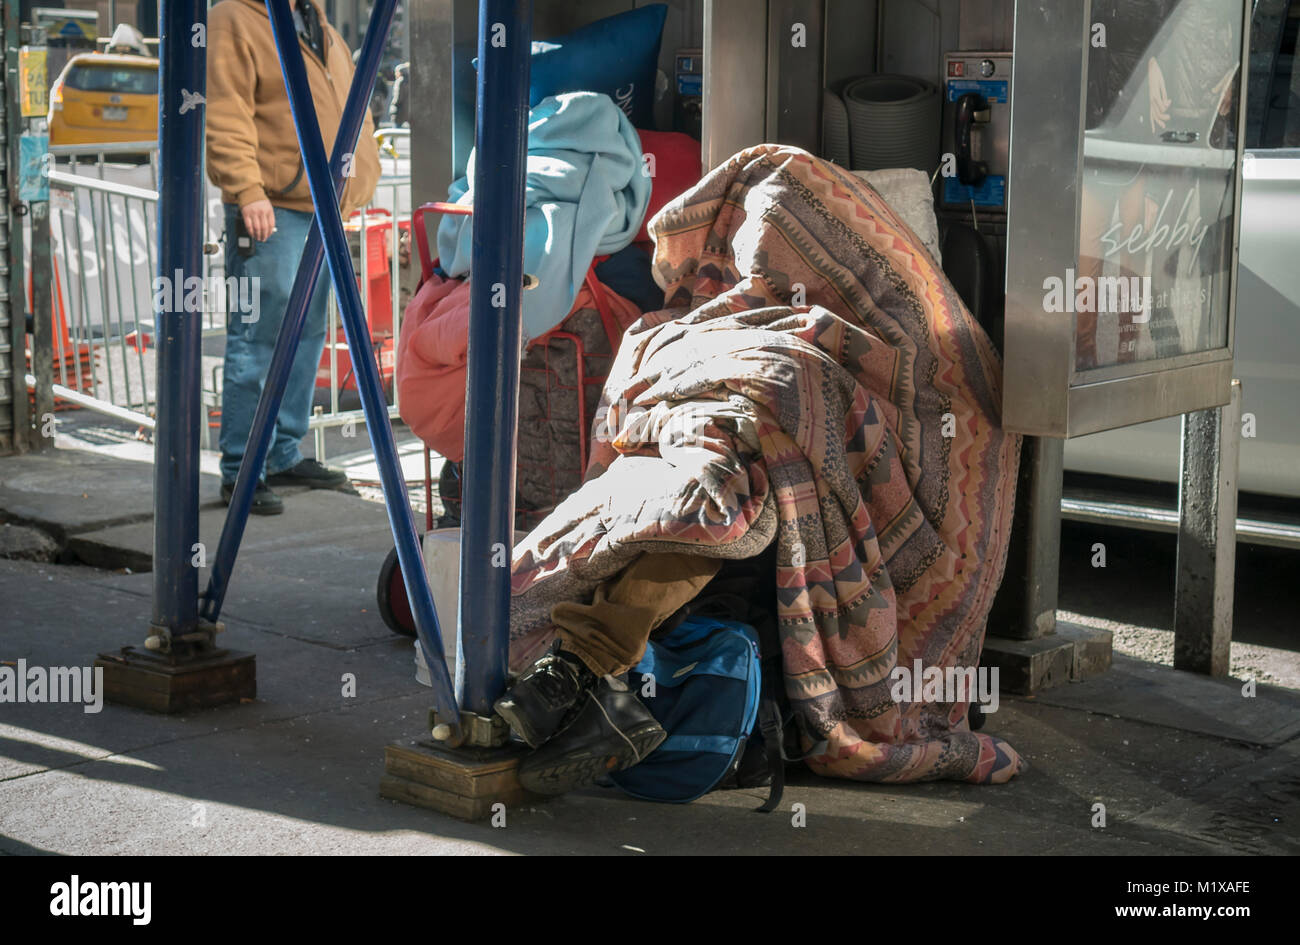 A homeless individual sleeps in front of a pay telephone kiosk in New York on Wednesday, January 31, 2018. (© - Stock Image